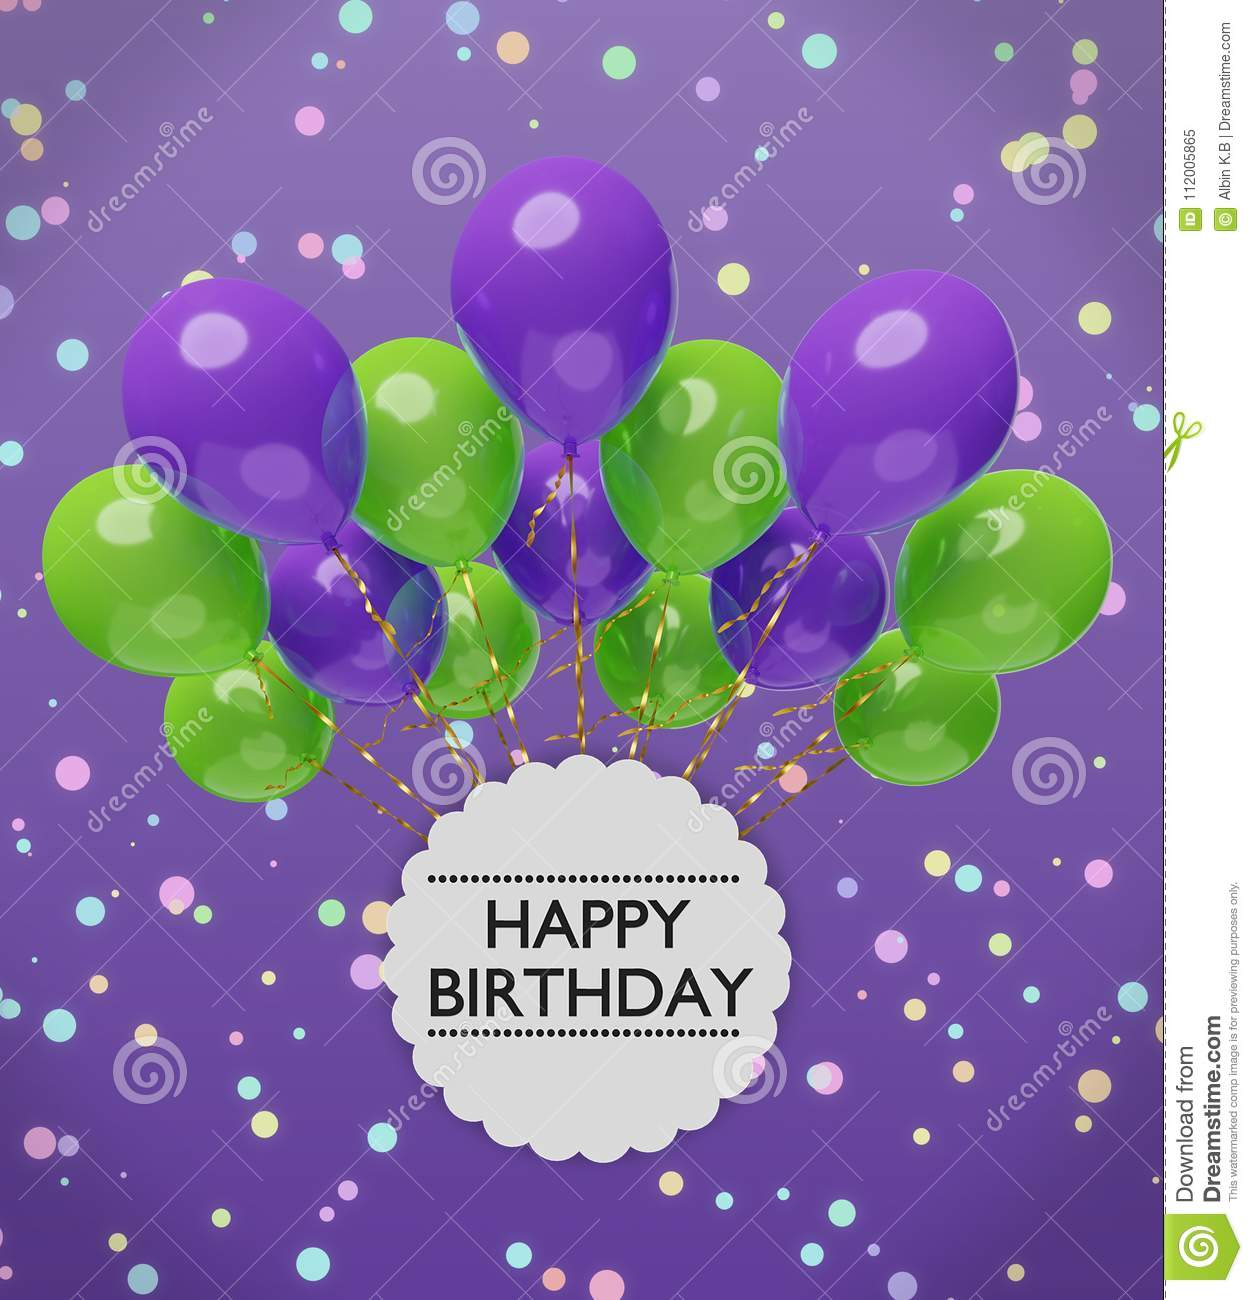 Happy birthday greetings with violet and green balloons 3d rendering download comp m4hsunfo